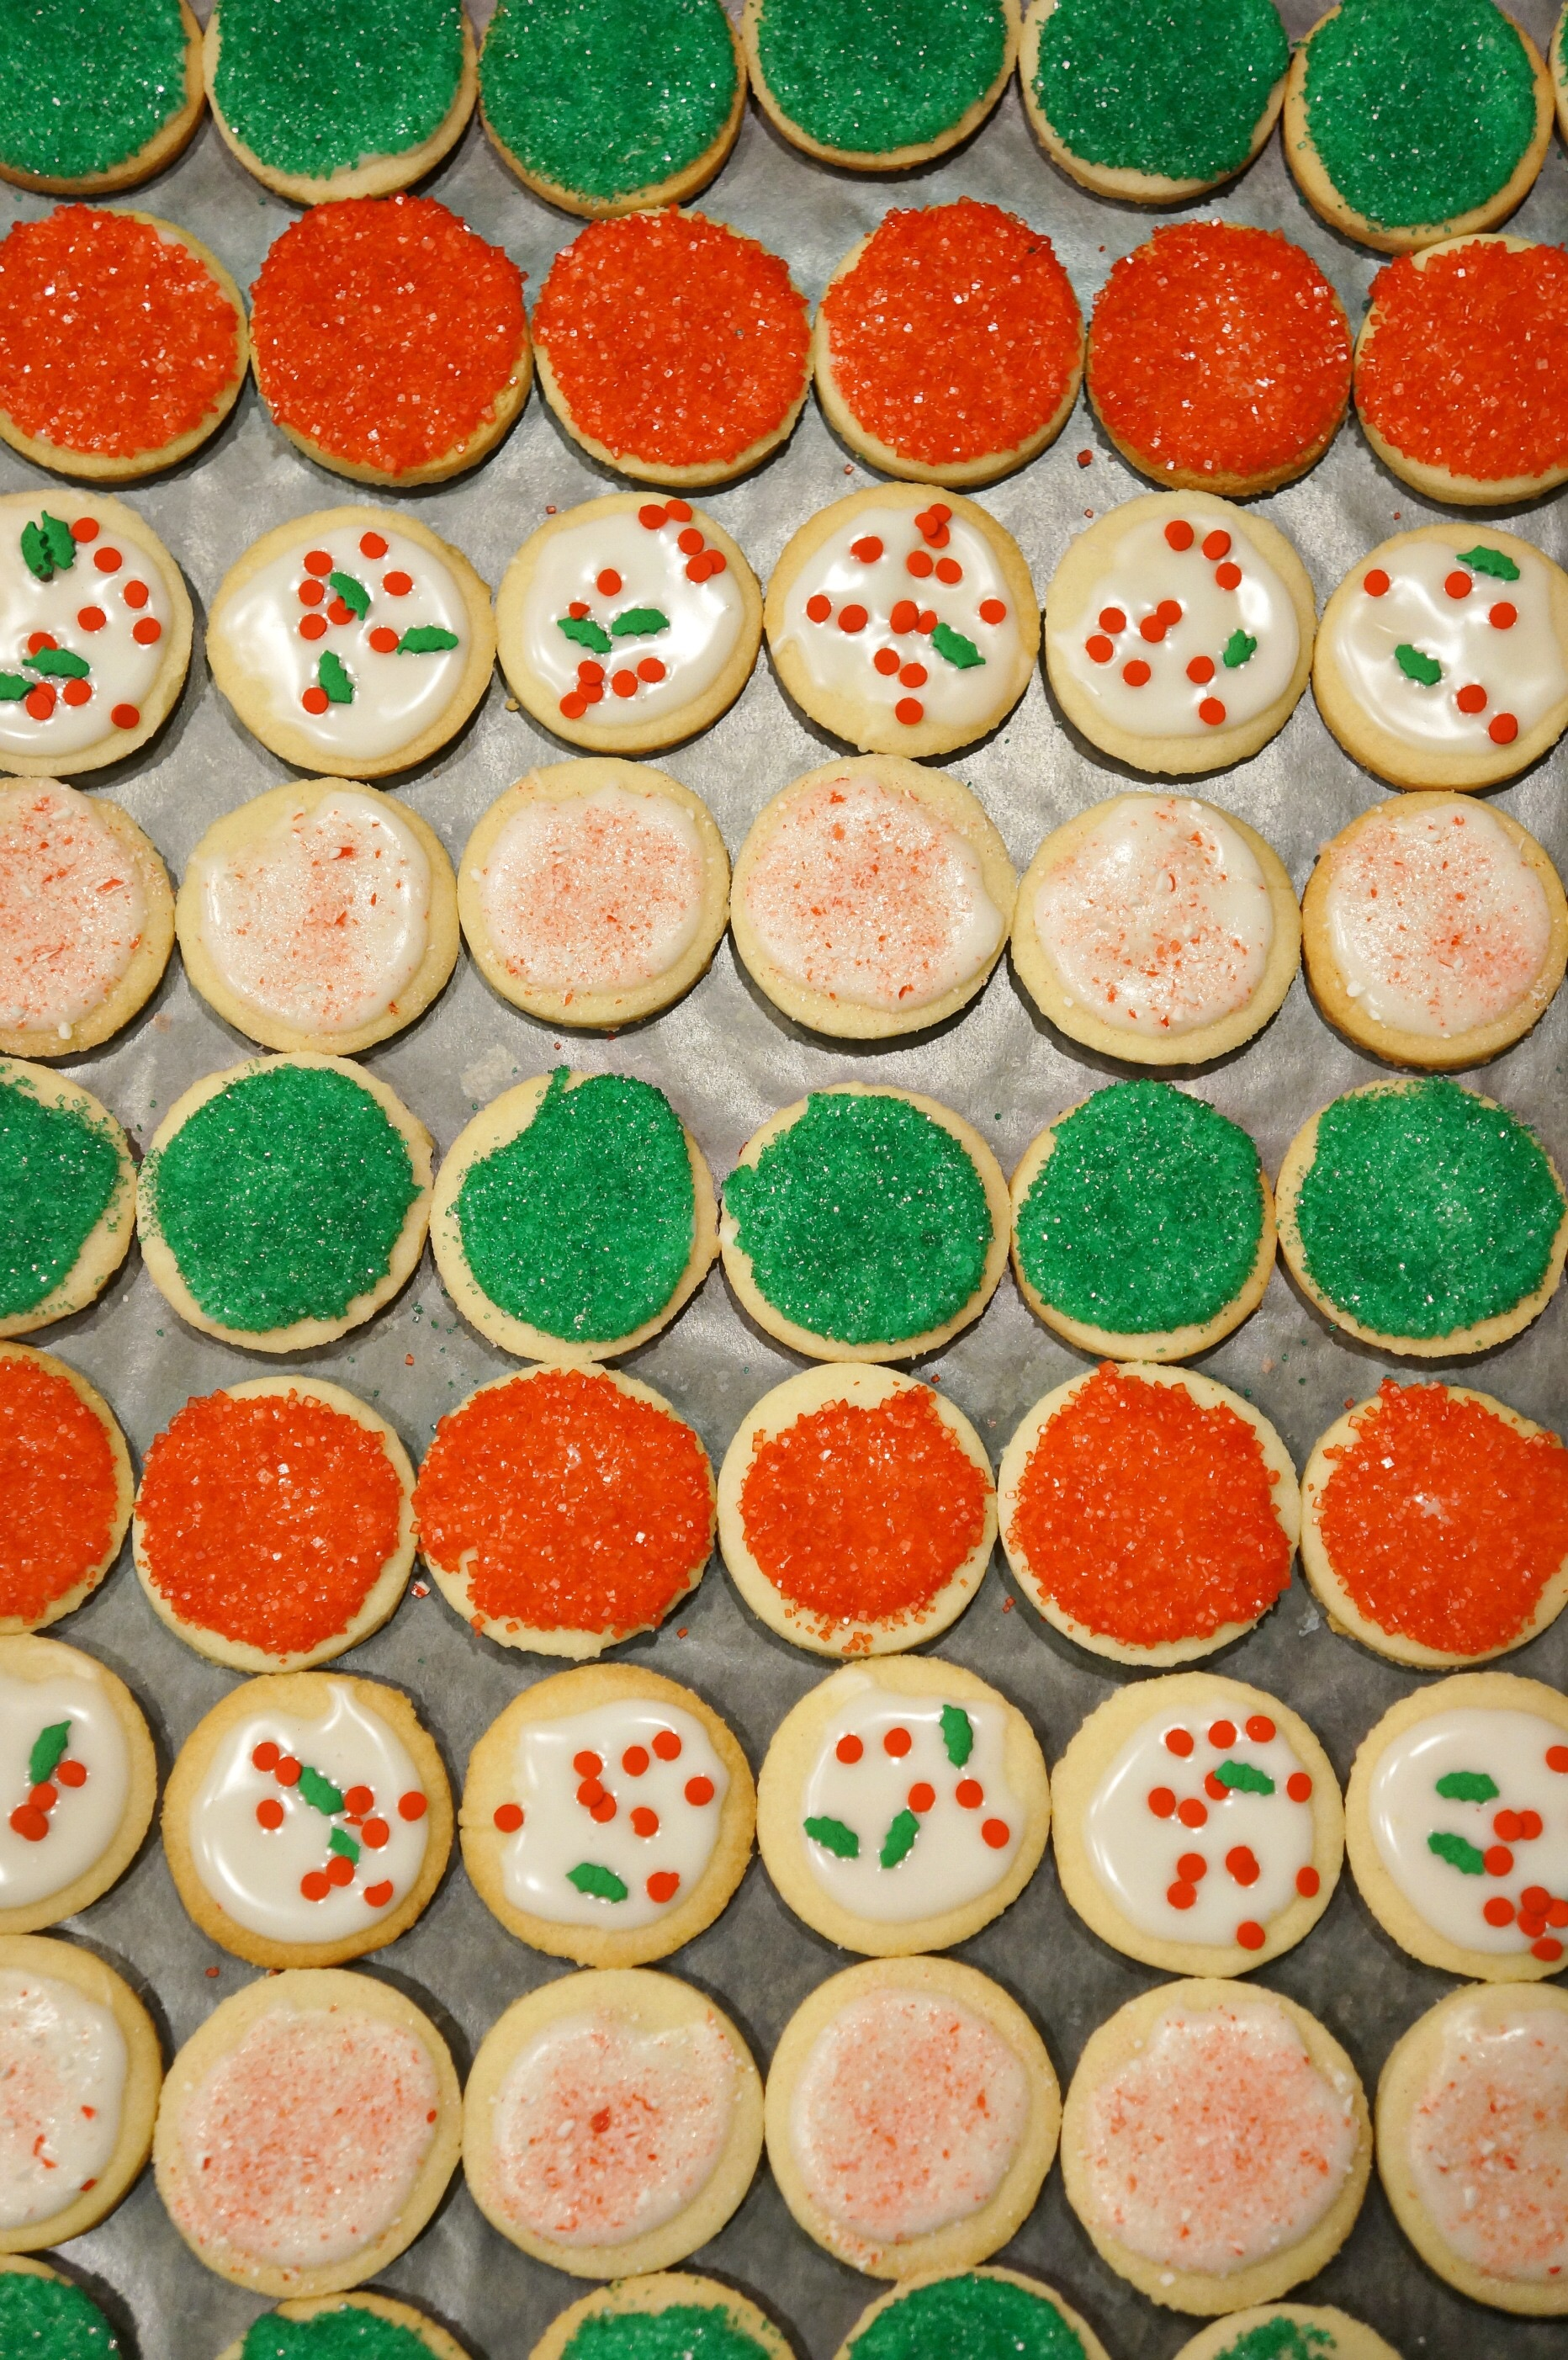 Starting with my cut-out sugar cookies topped with my favorite easy glaze, red sprinkles, green sprinkles, Christmas sprinkles and peppermint crunch.